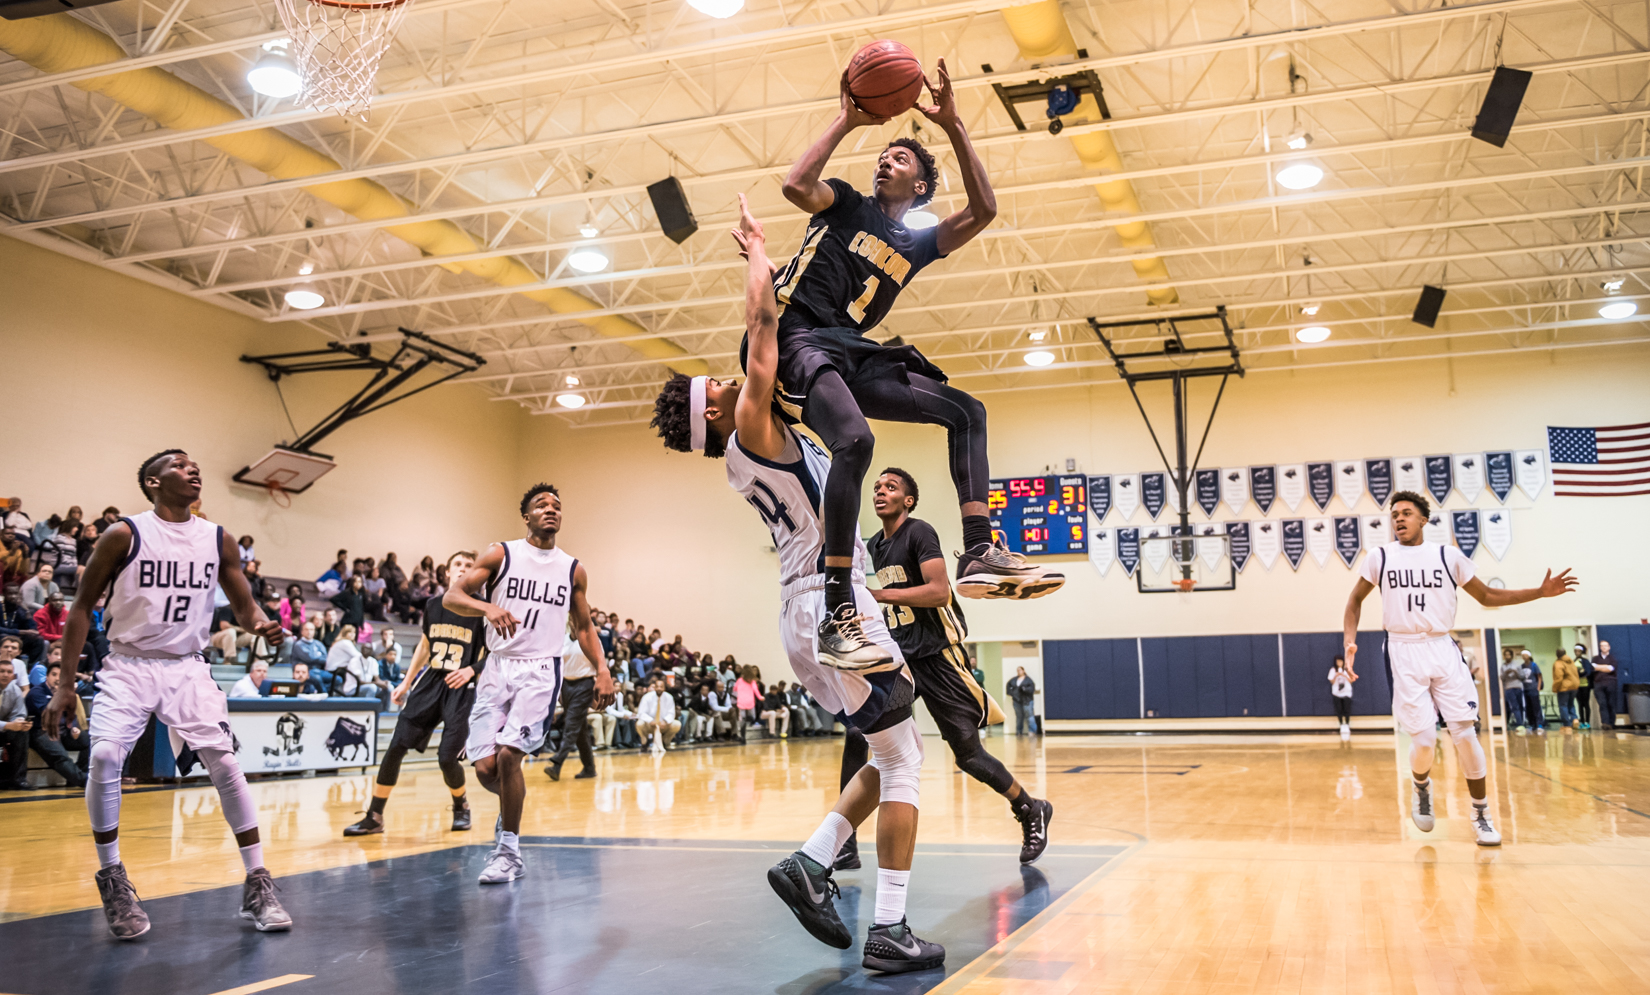 <p>First Place | Sports </p><p>James Nix, Independent Tribune</p><p></p><p>Concord's Rechon Black (1) goes up for a shot against Hickory Ridge Monday night at Hickory Ridge High School in Harrisburg. Hickory Ridge won the game 72-67.</p>